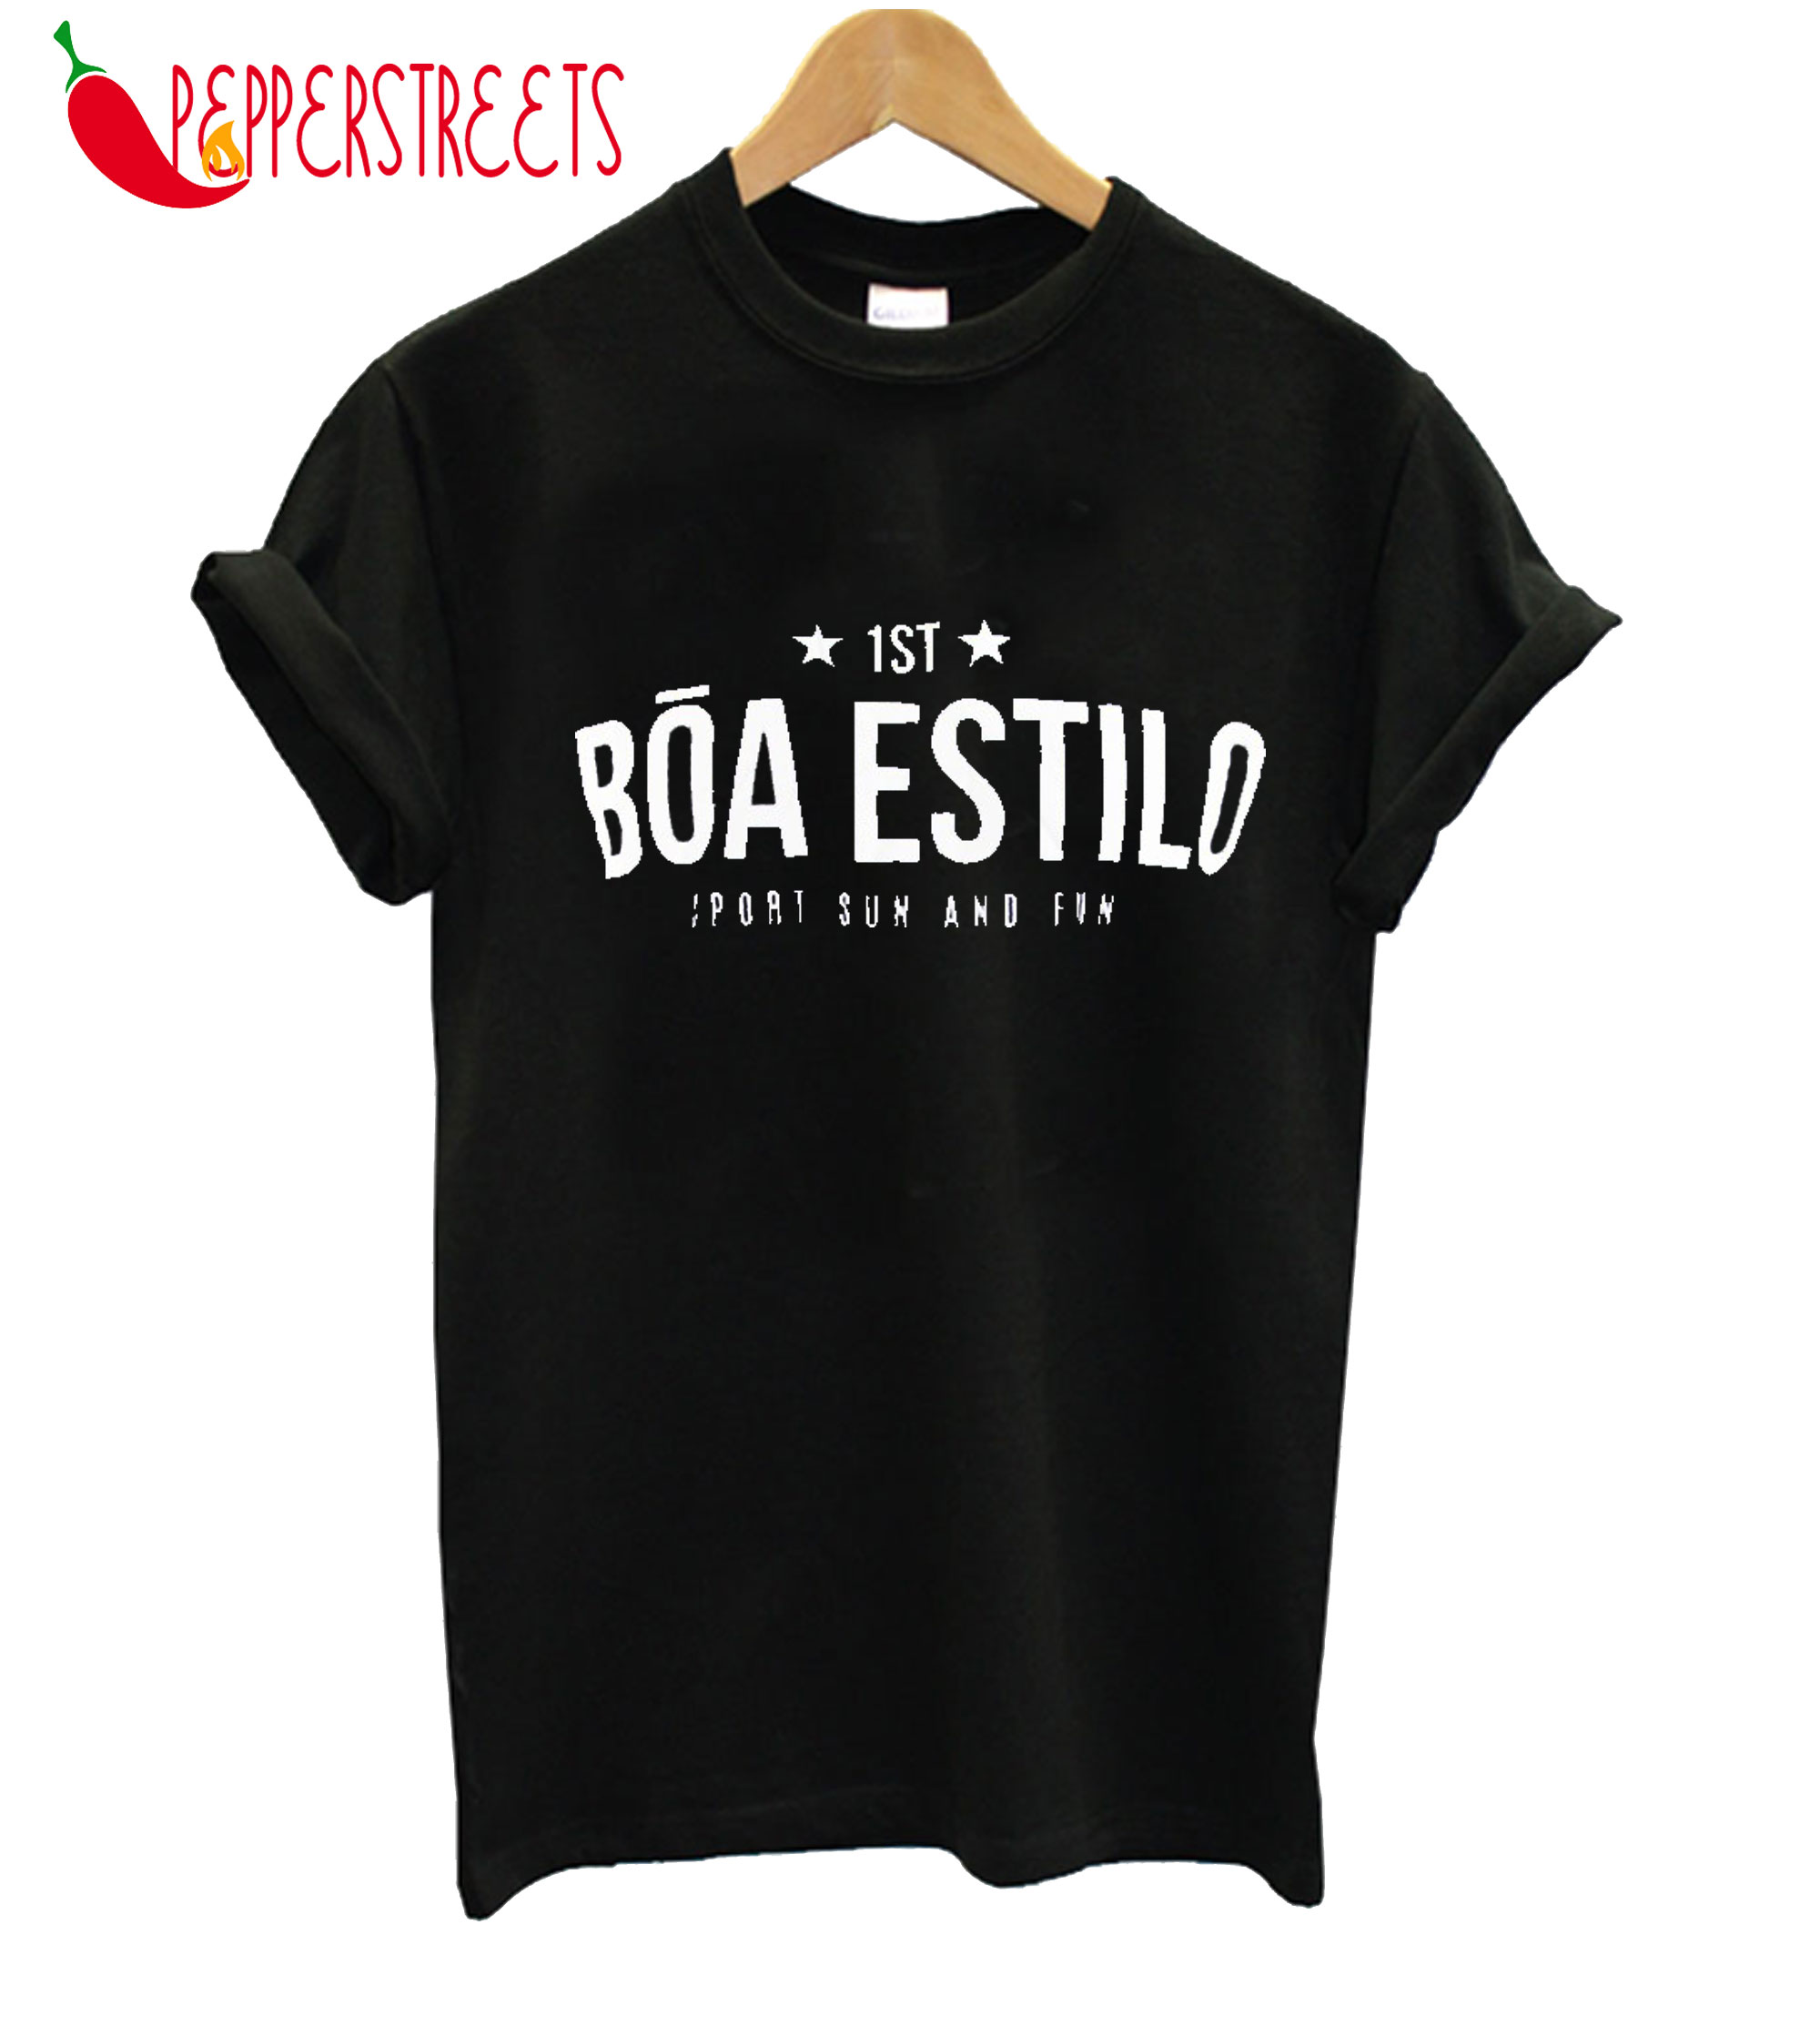 1ST Boa Estilo Sports Sun And Fun T-Shirt